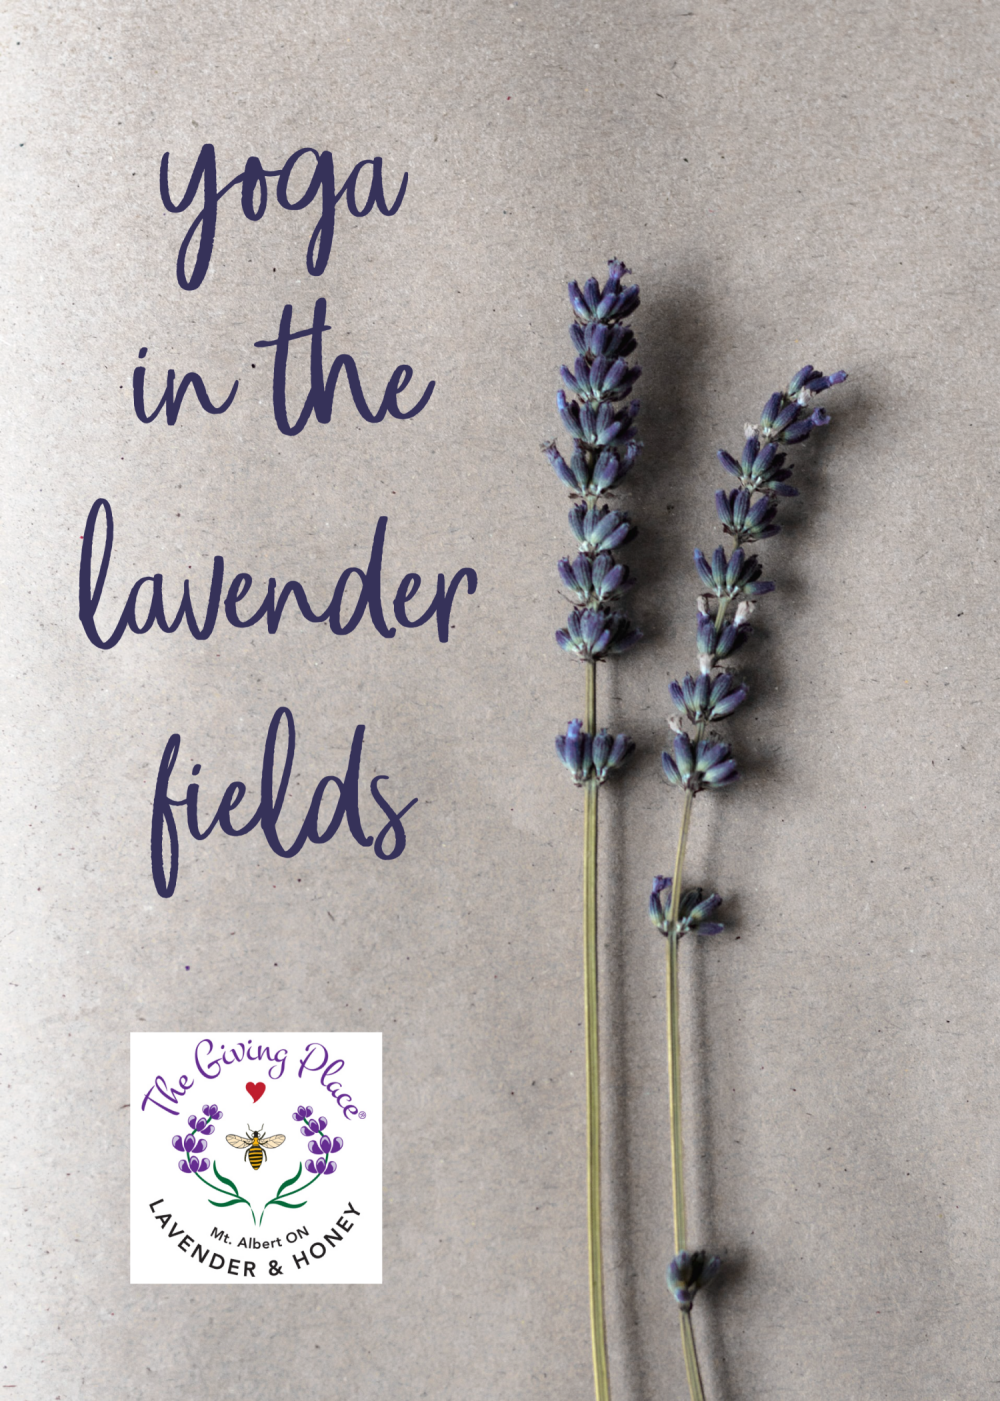 yoga in the lavender fields title with a sprig of lavender flowers